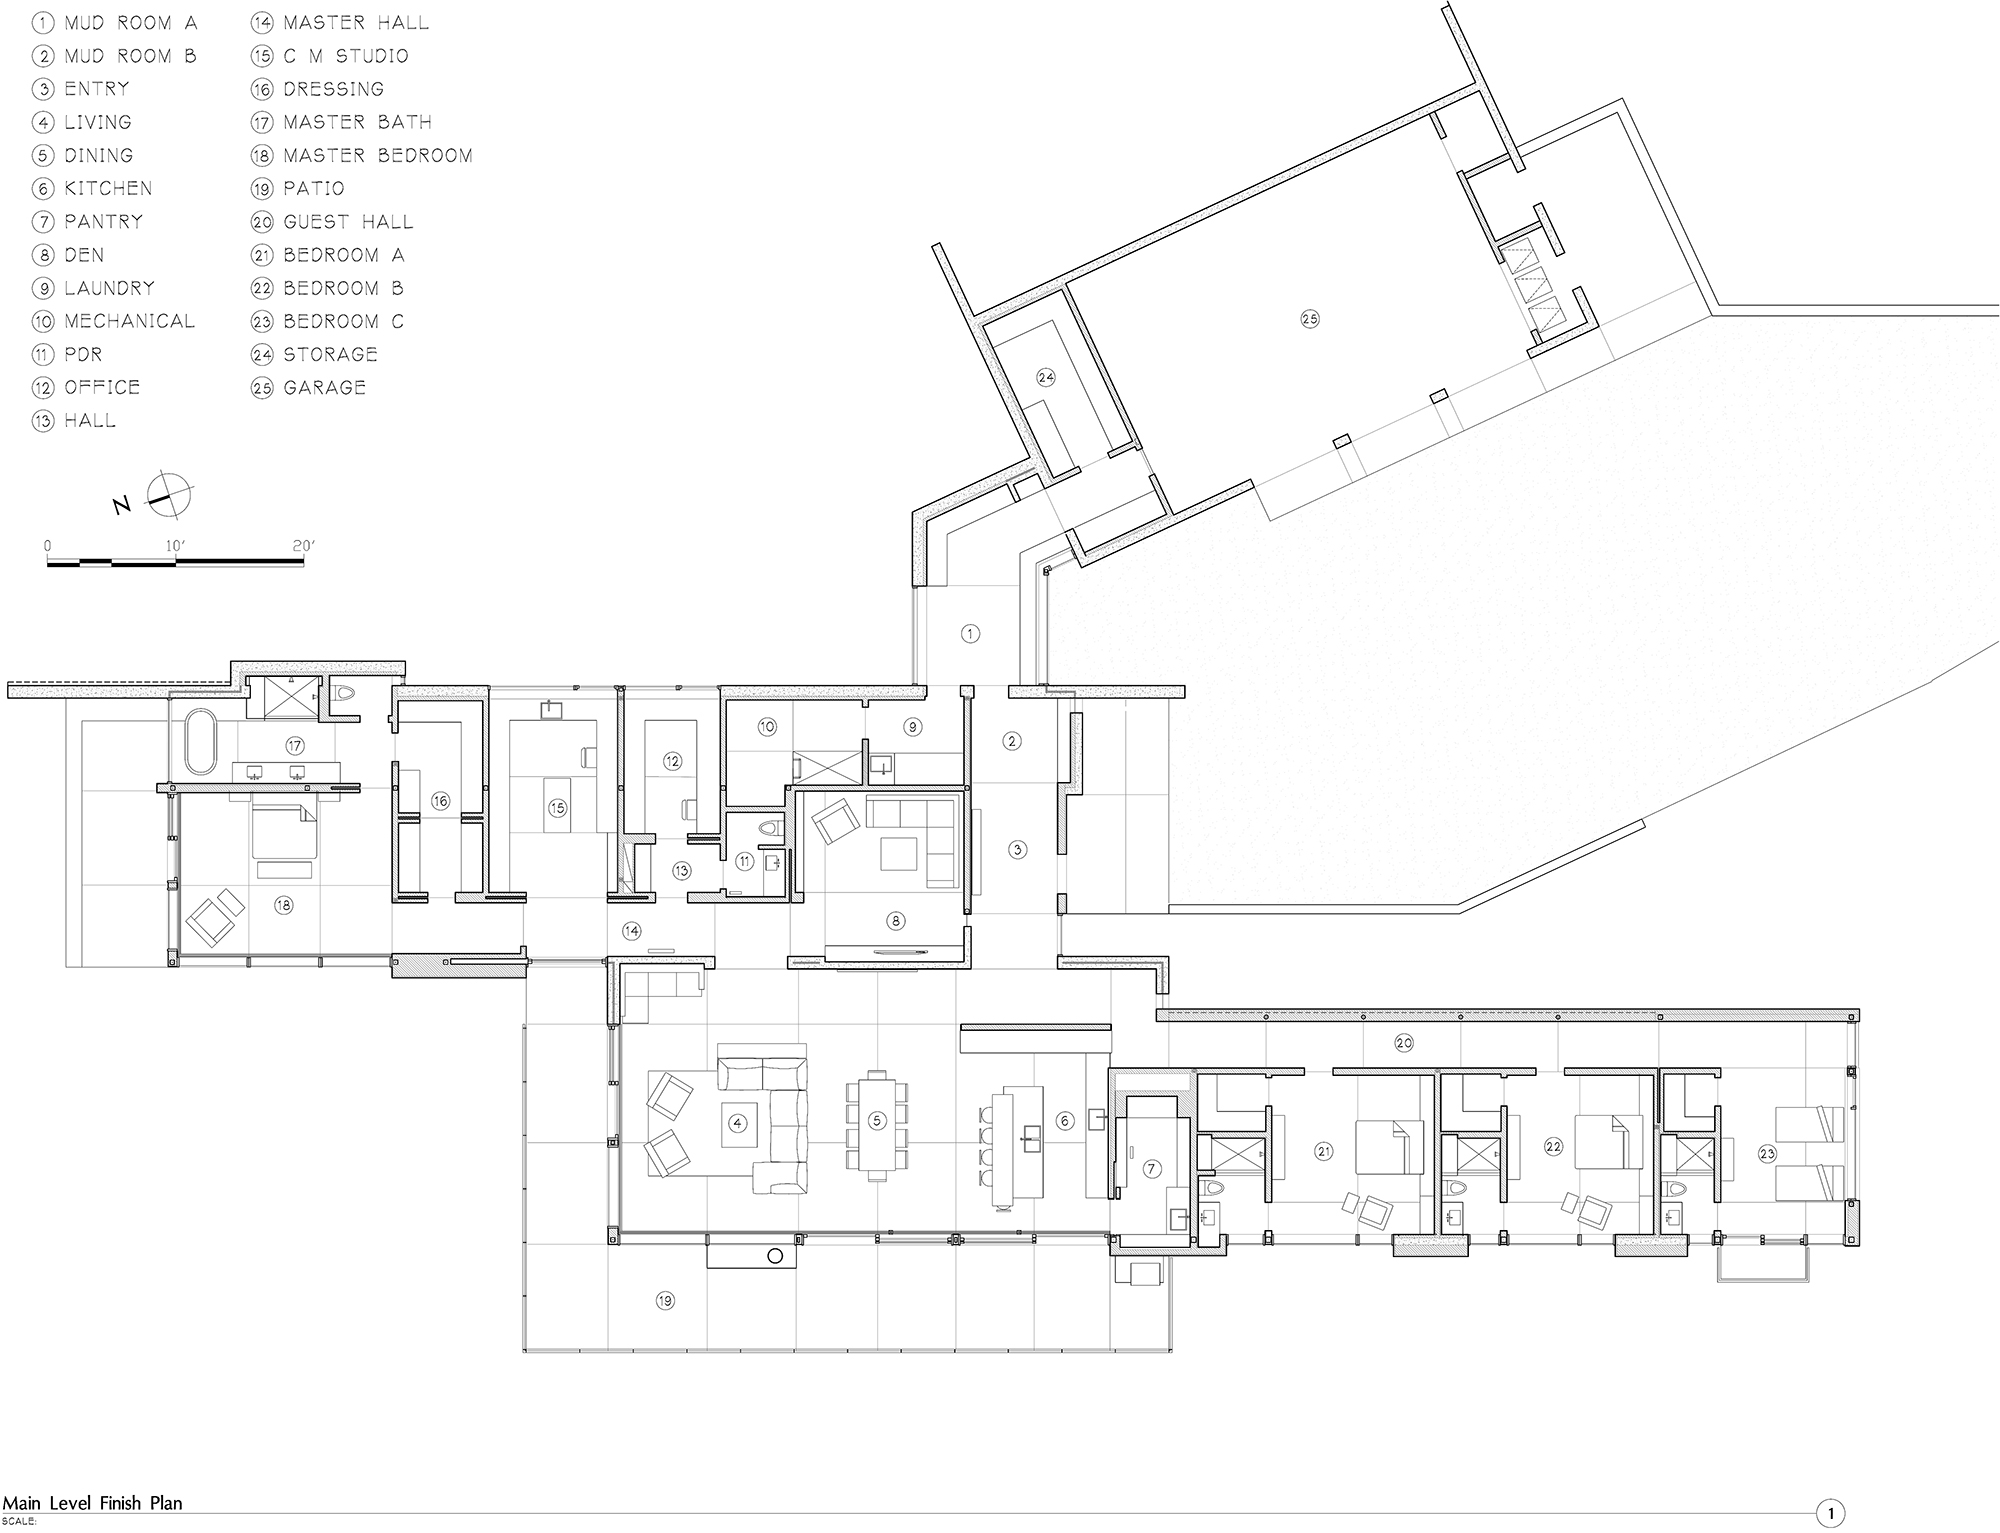 Finish Floor Plan with Furniture  }